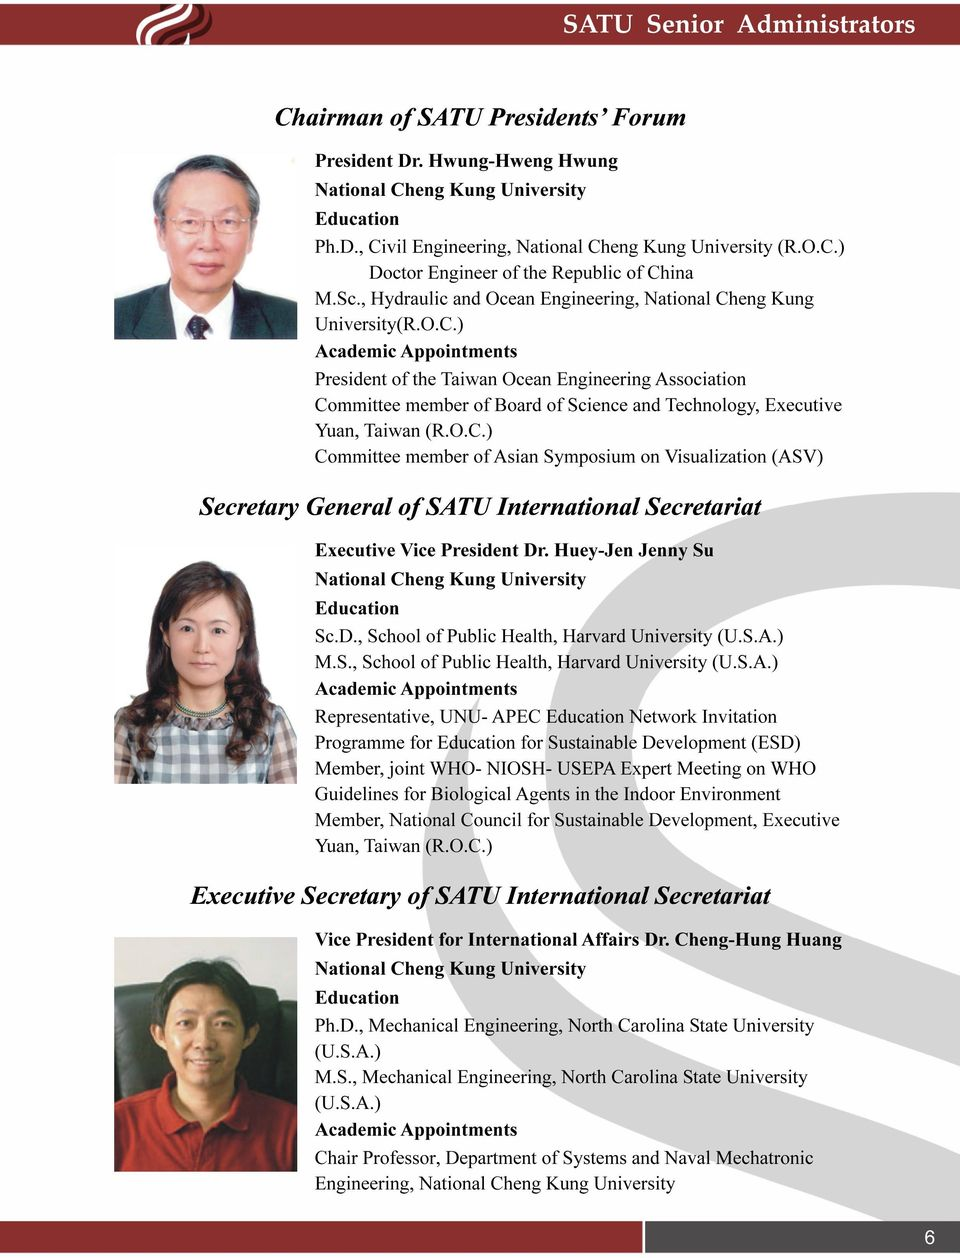 eng Kung University(R.O.C.) Academic Appointments President of the Taiwan Ocean Engineering Association Committee member of Board of Science and Technology, Executive Yuan, Taiwan (R.O.C.) Committee member of Asian Symposium on Visualization (ASV) Secretary General of SATU International Secretariat Executive Vice President Dr.